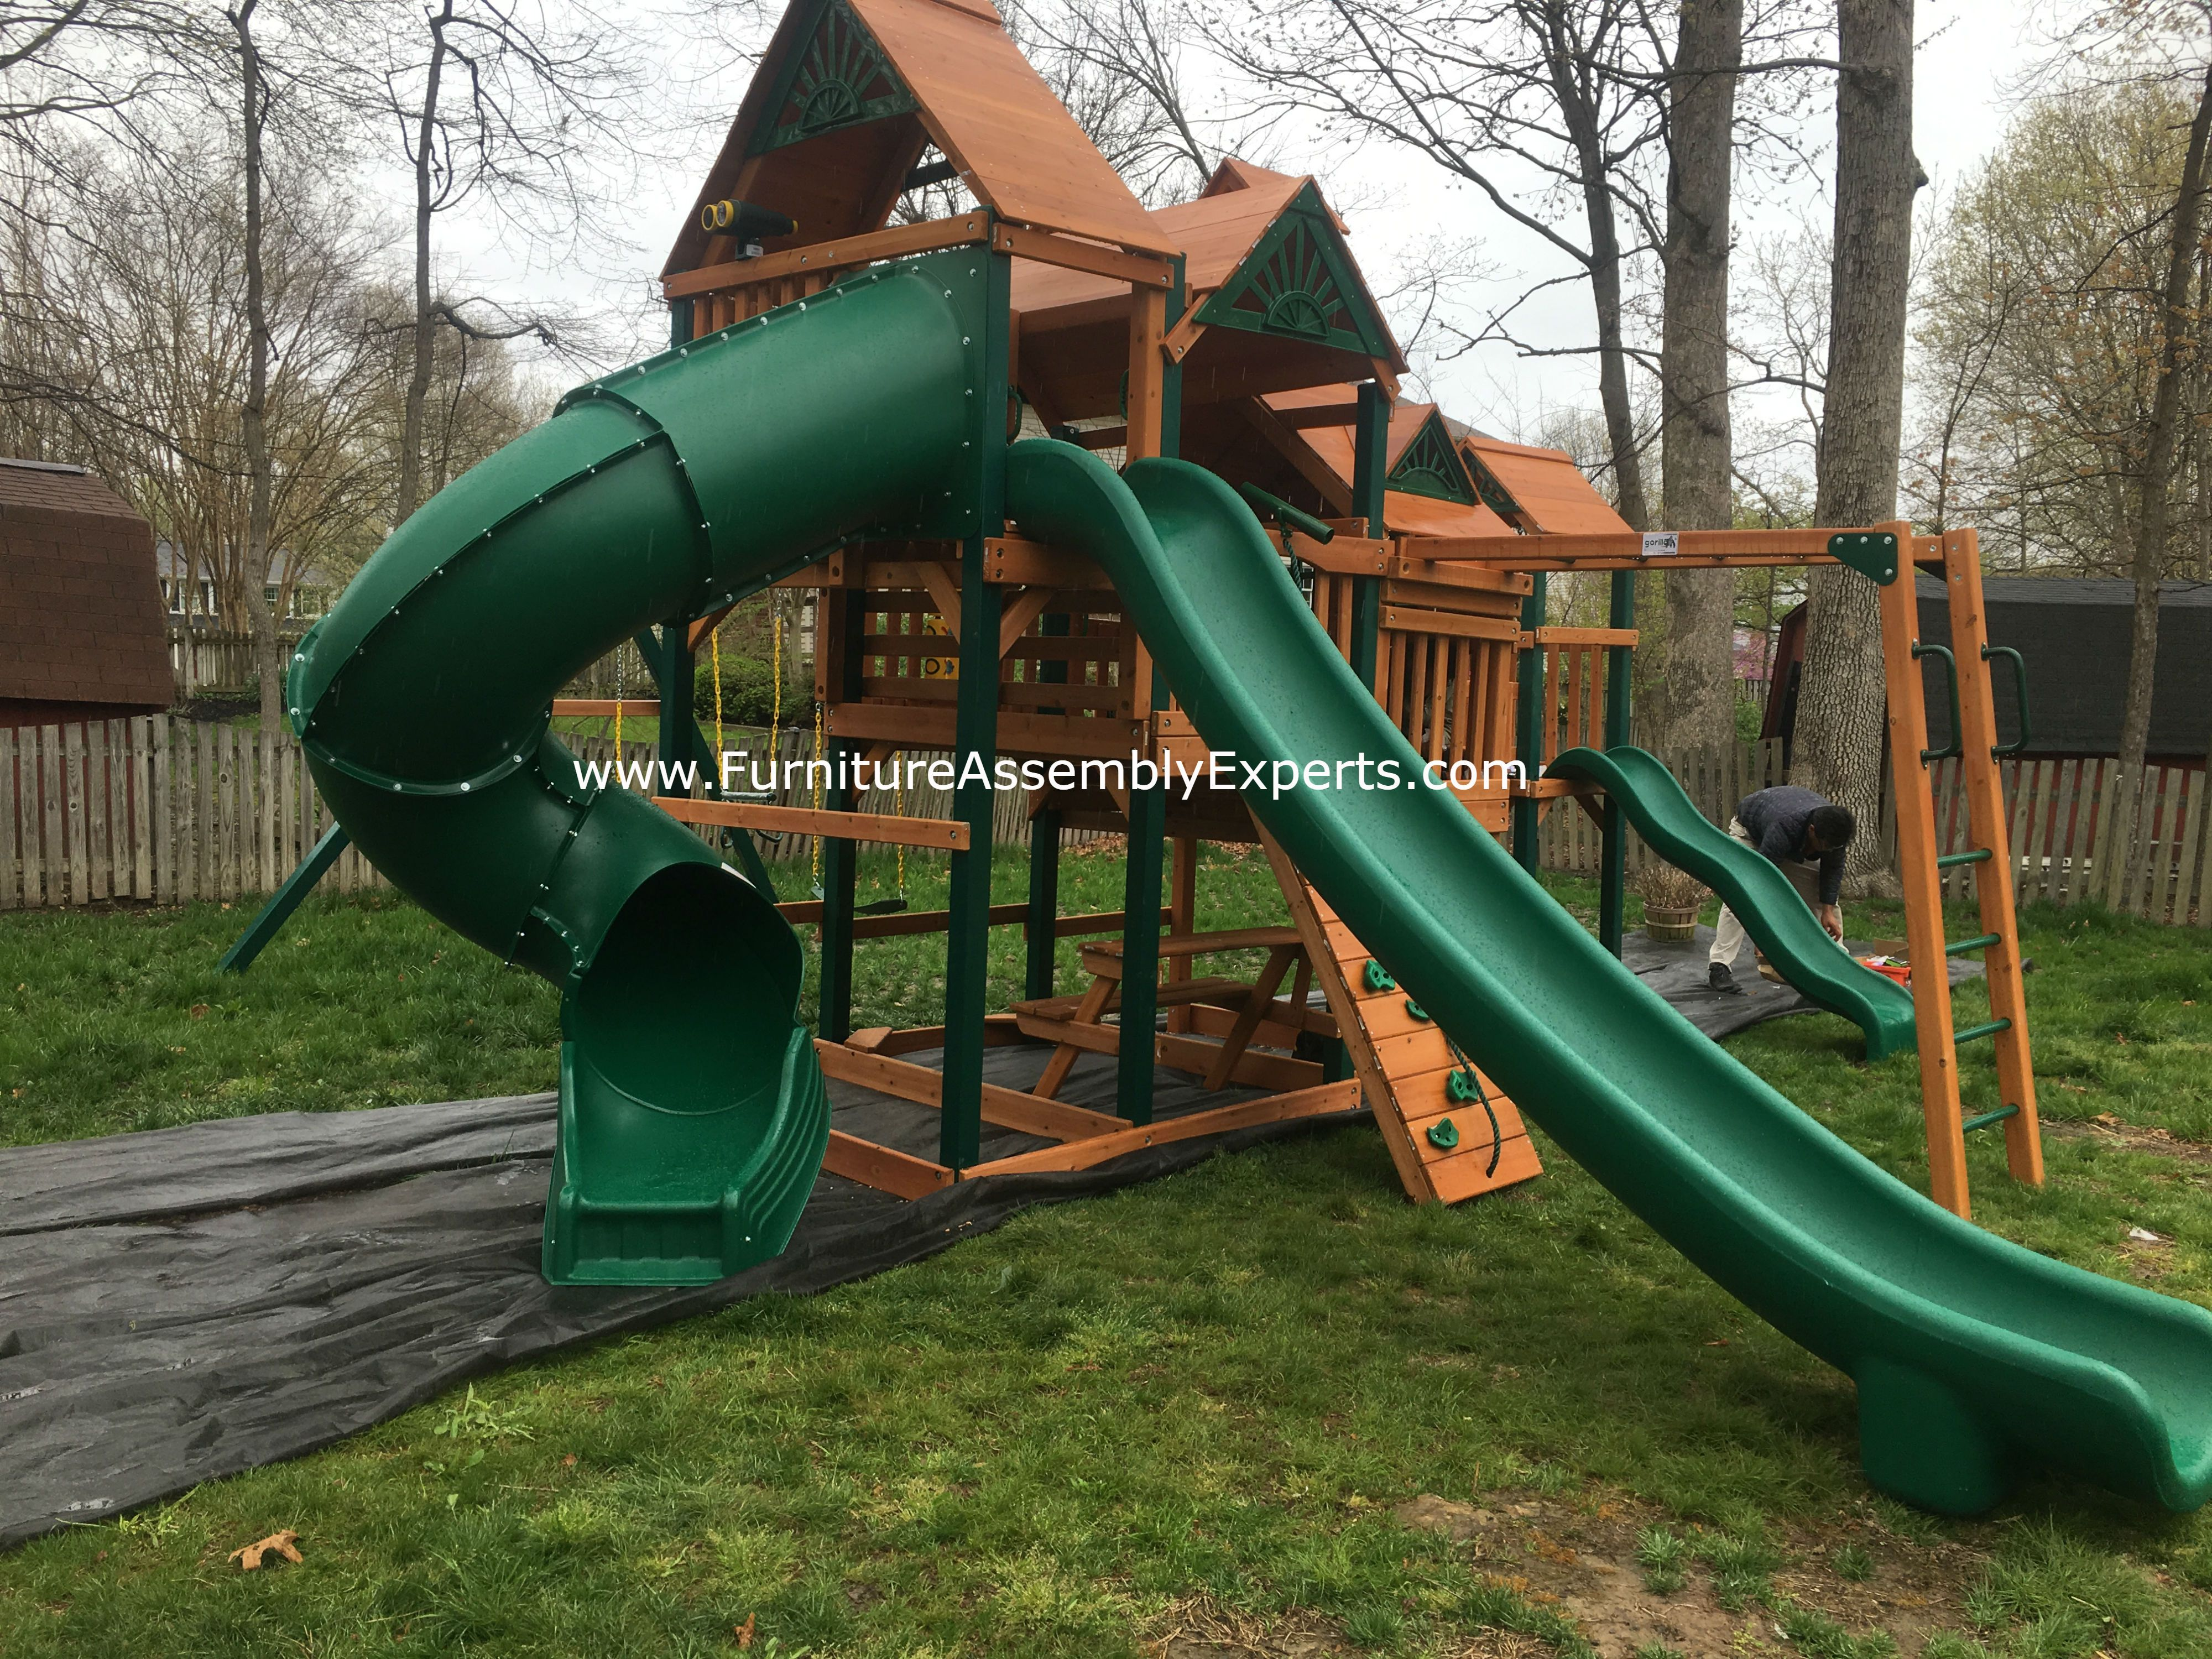 gorilla empire extreme swing set / Playset assembled for a